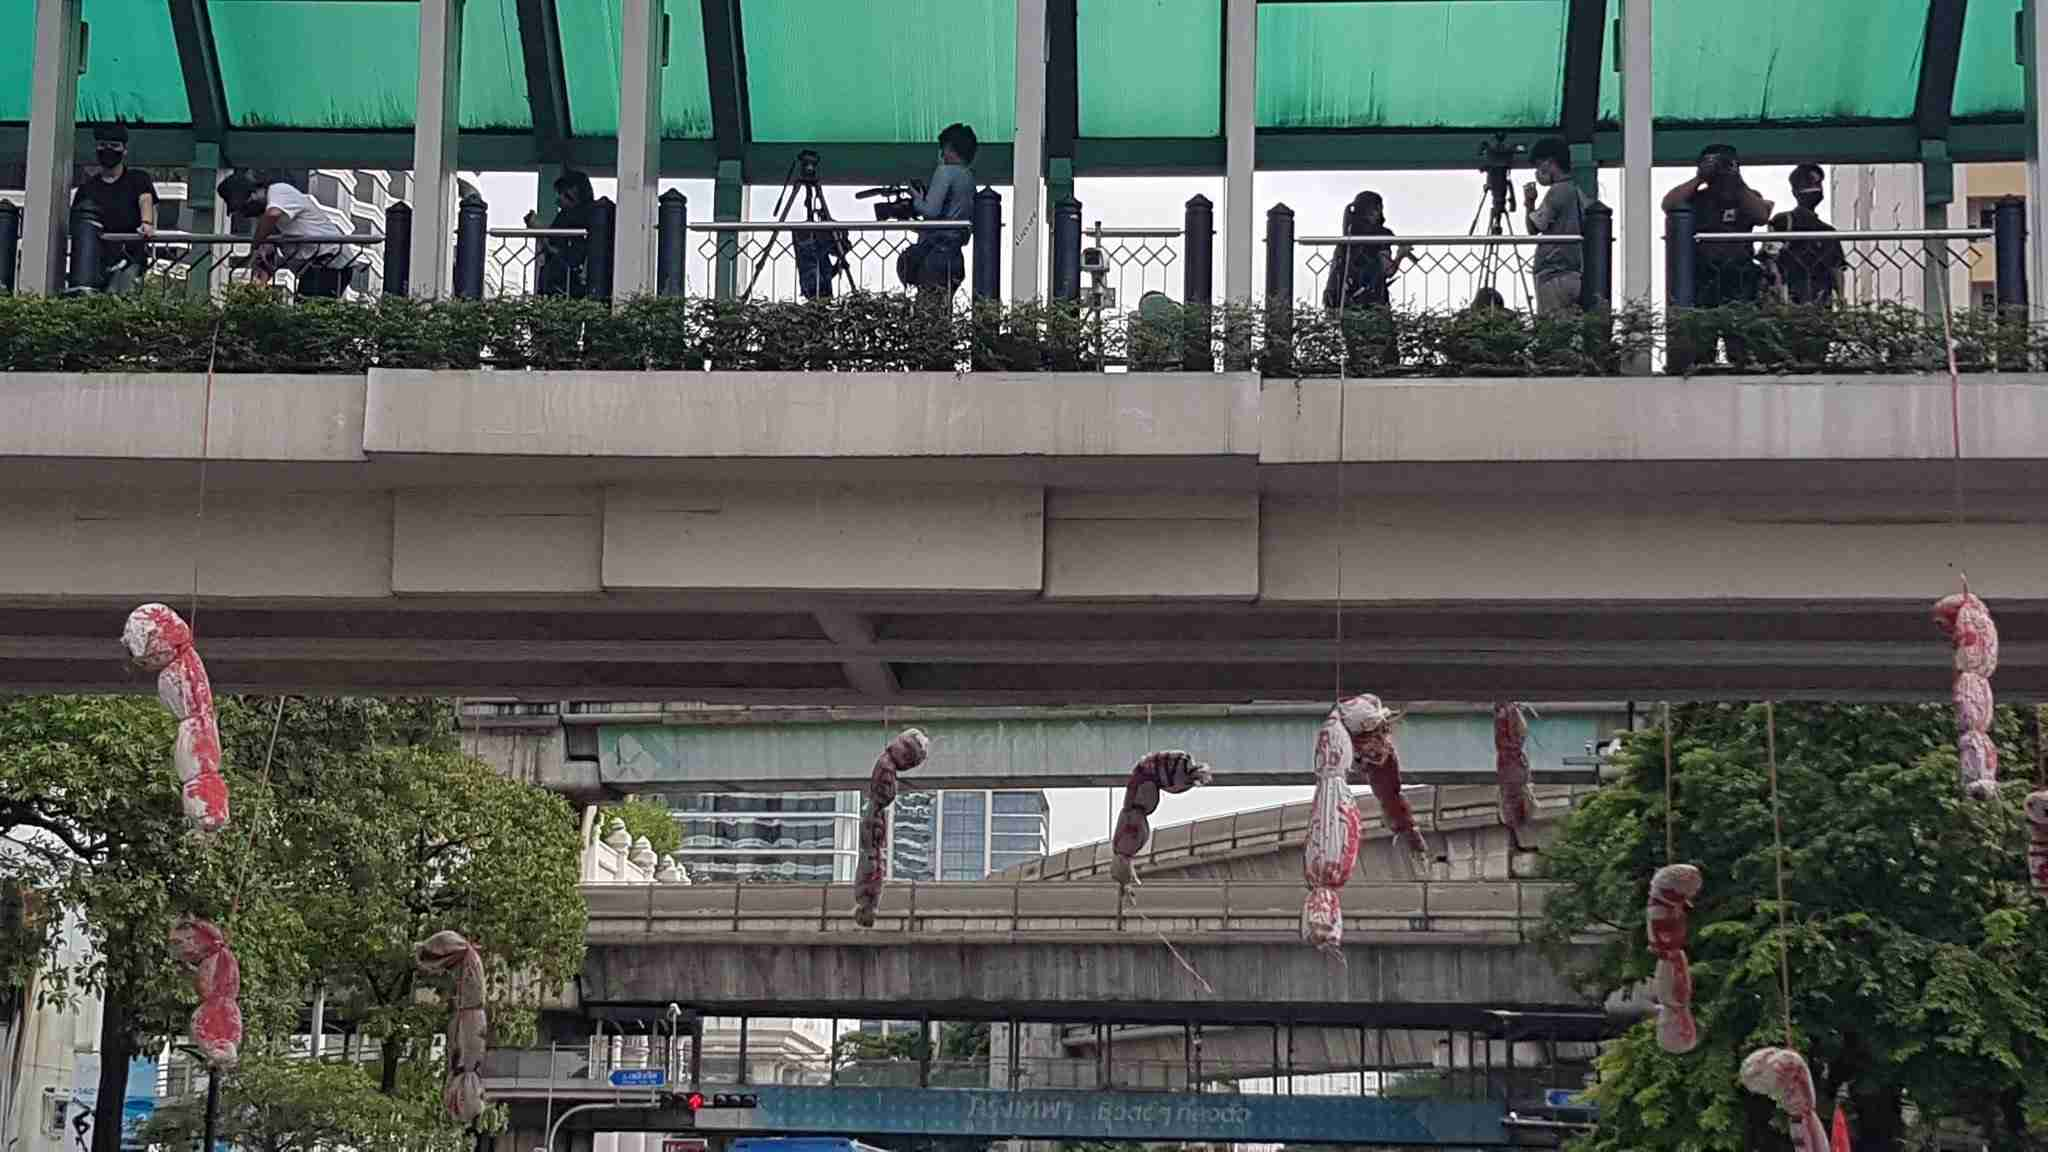 During a rally at the Ratchaprasong intersection in central Bangkok on Sept. 3, protesters hung mock cadavers in body bags from a pedestrian bridge as a reminder of the thousands of deaths in the country due to an ongoing Covid-19 outbreak.